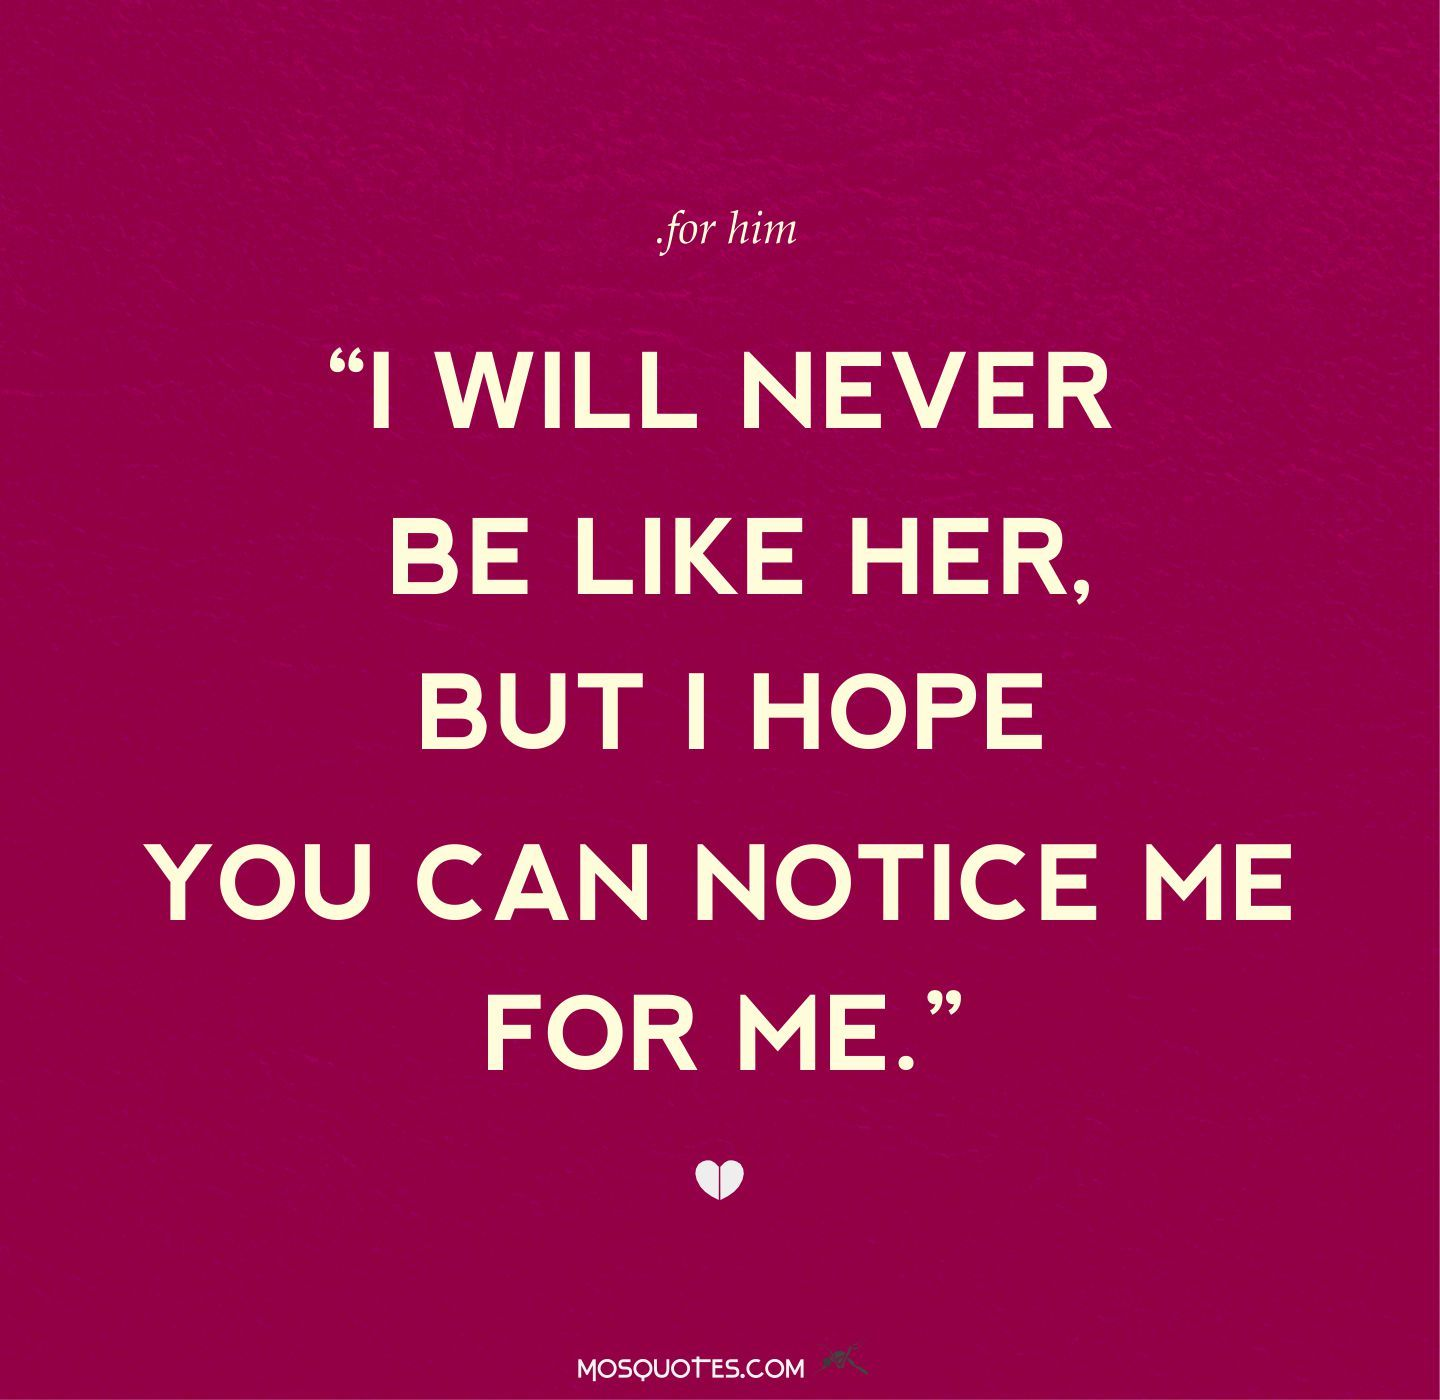 Profound Quotes About Love Love Quotes For Him I Will Never Be Like Her But I Hope You Can